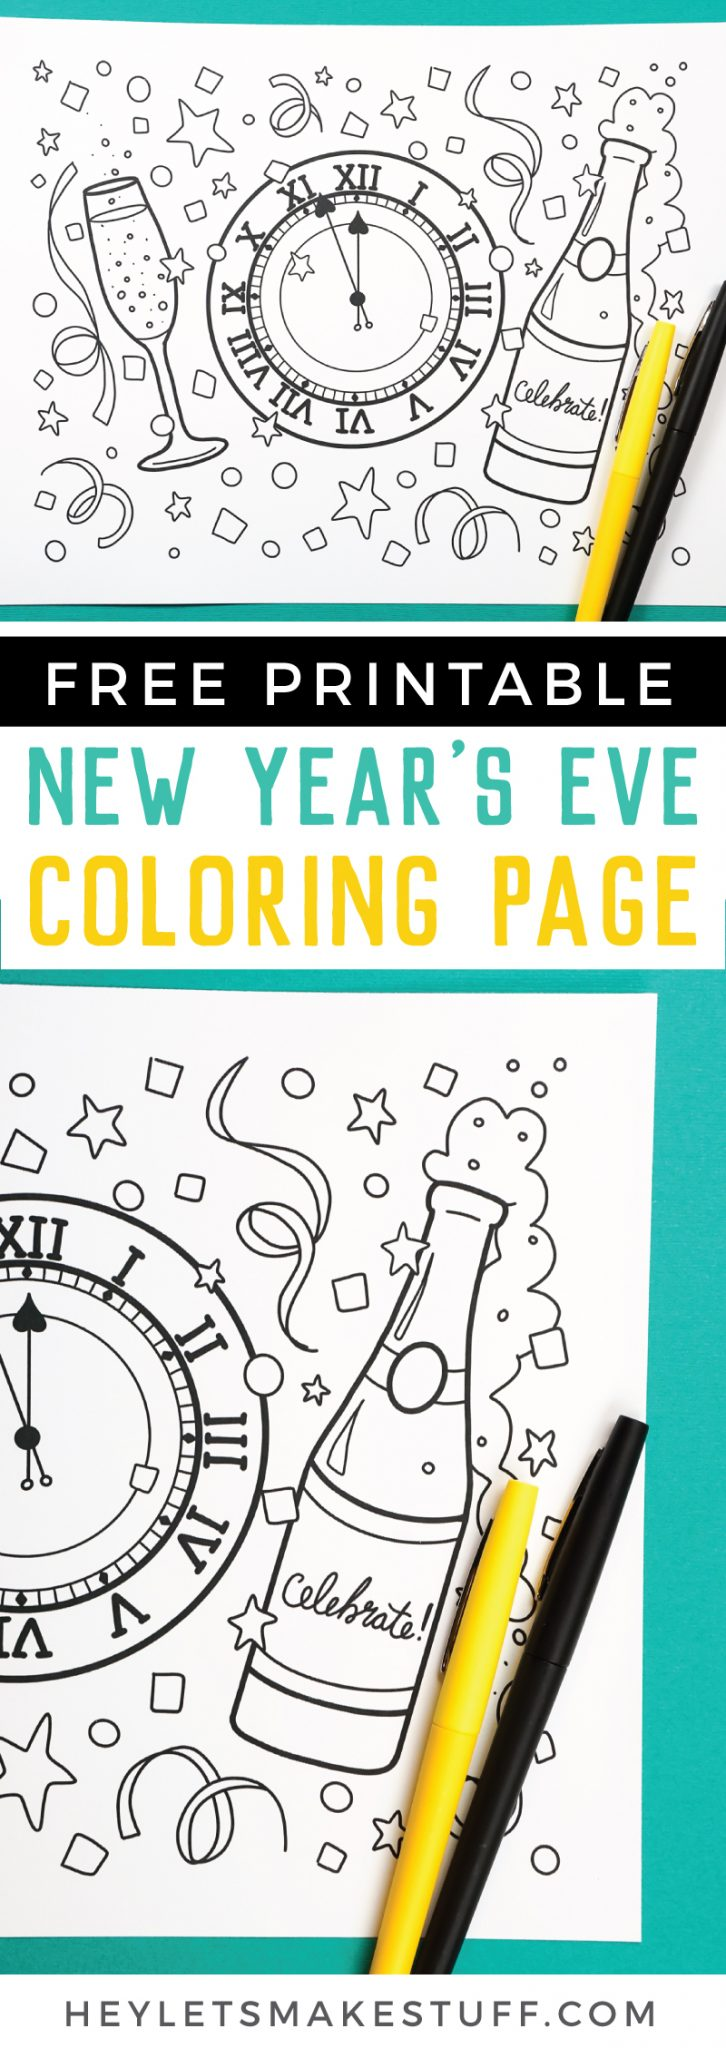 Let the countdown begin! Ring in the new year with celebration and a whole lot of color. Bring this free printable New Year's Eve coloring page to life as you wait for the clock to strike midnight! via @heyletsmakestuf